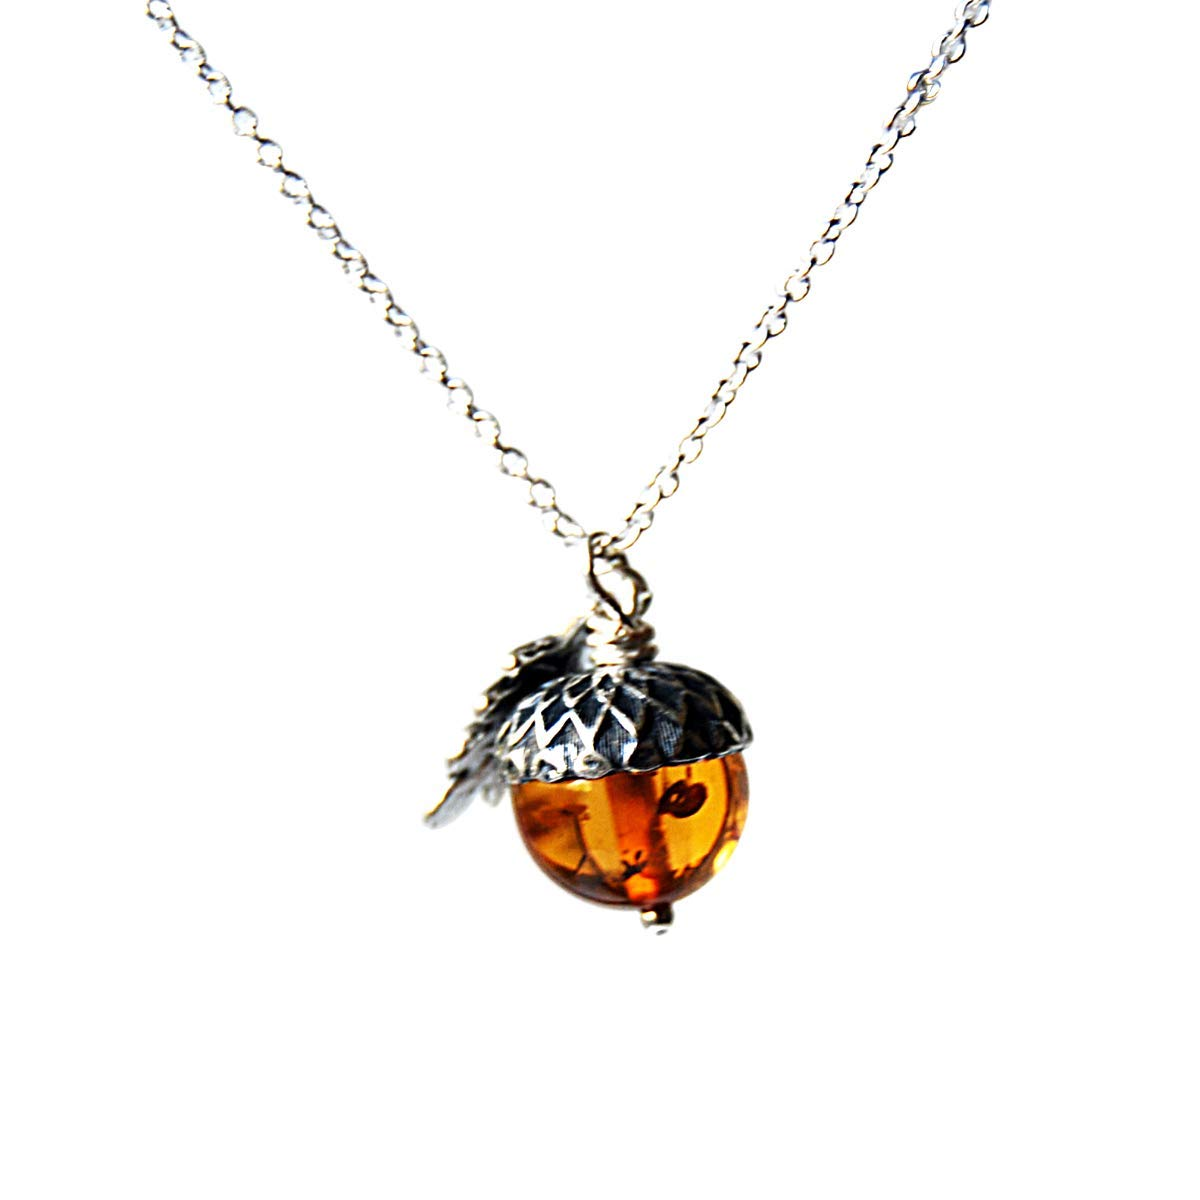 Enchanted Leaves - Amber and Silver Acorn Necklace - Man Made Amber - Cute Nature Charm Necklace